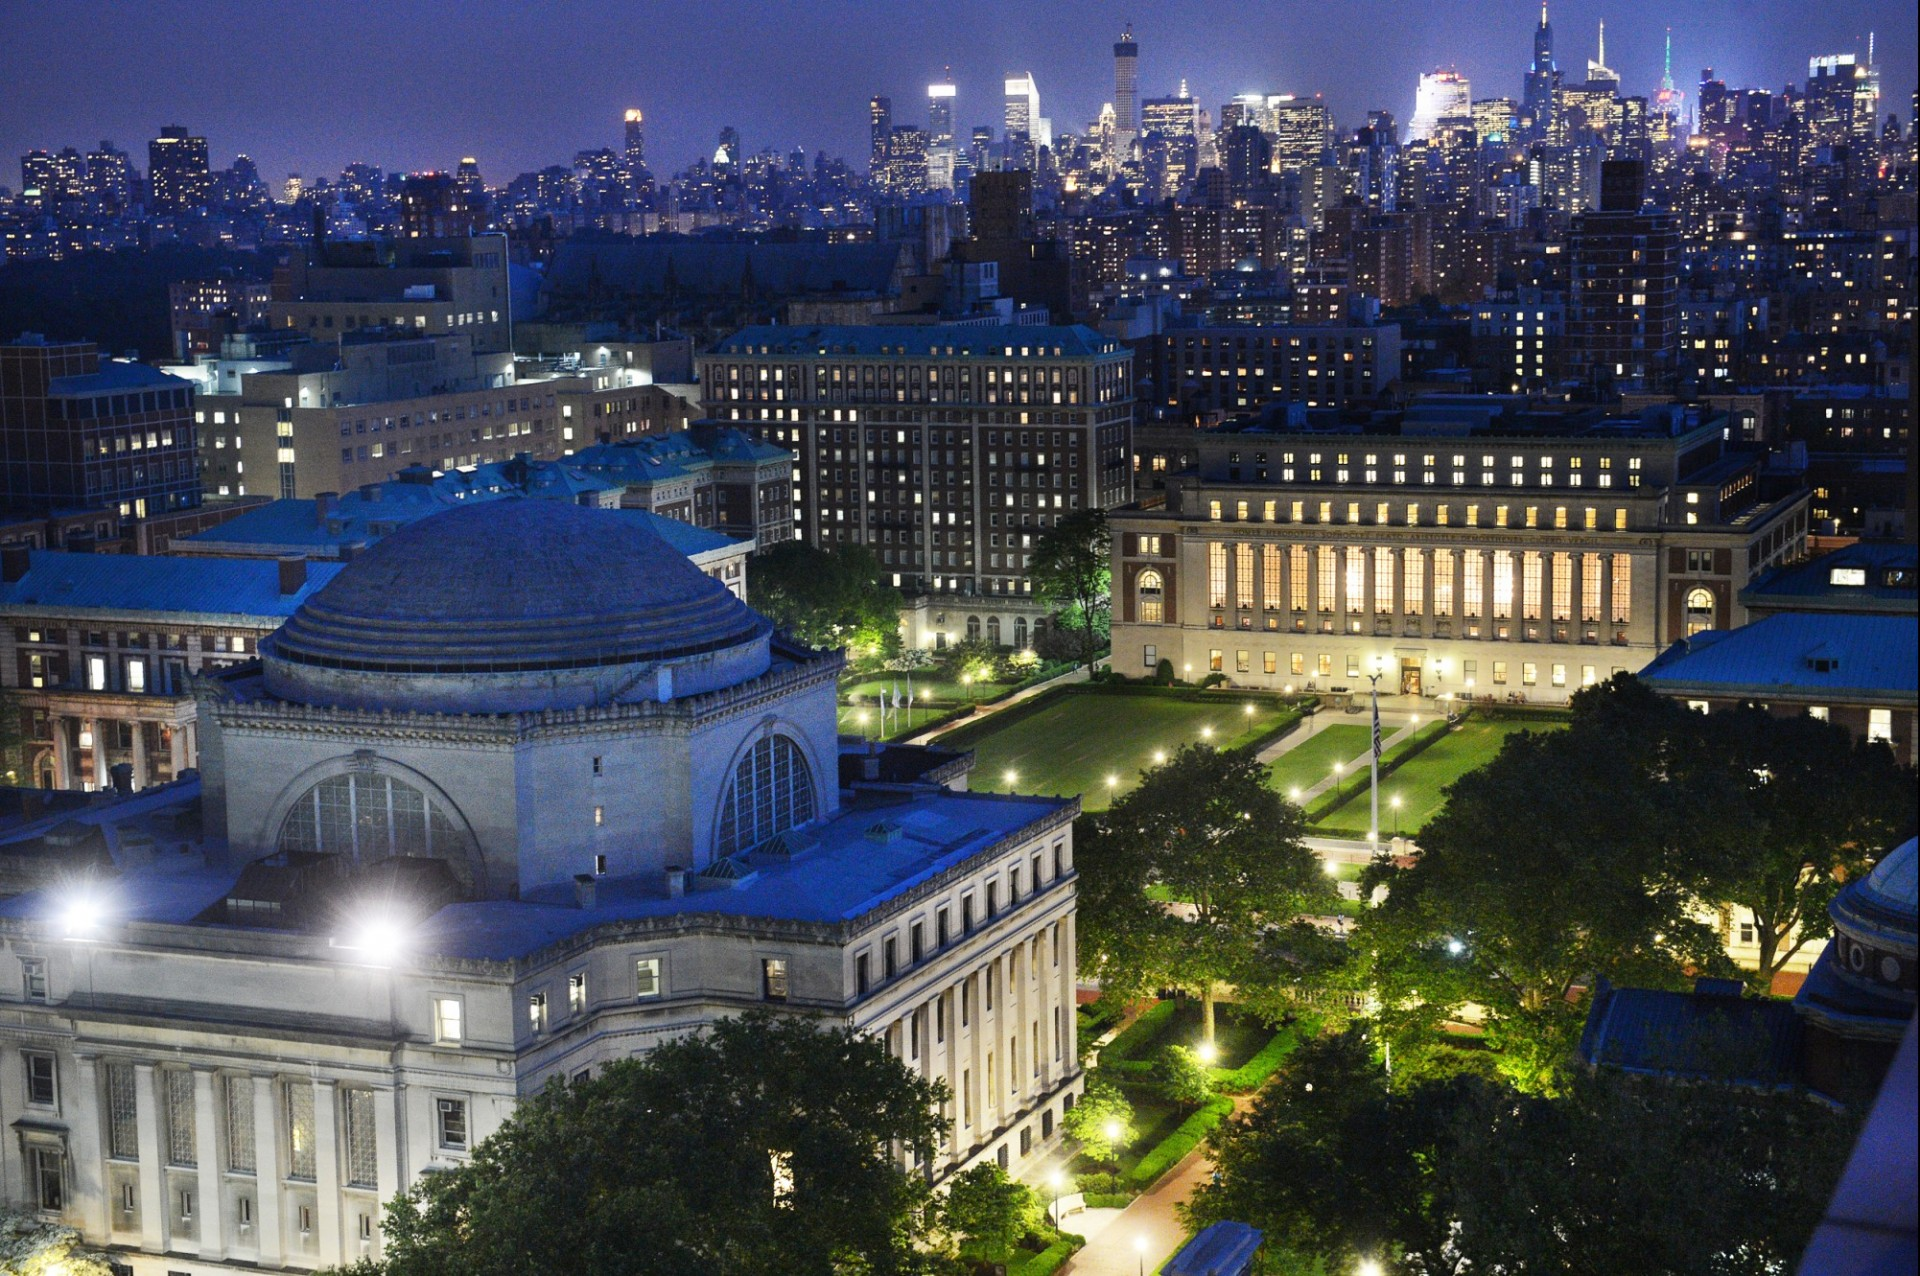 An aerial view of Columbia University's Morningside Campus at night.